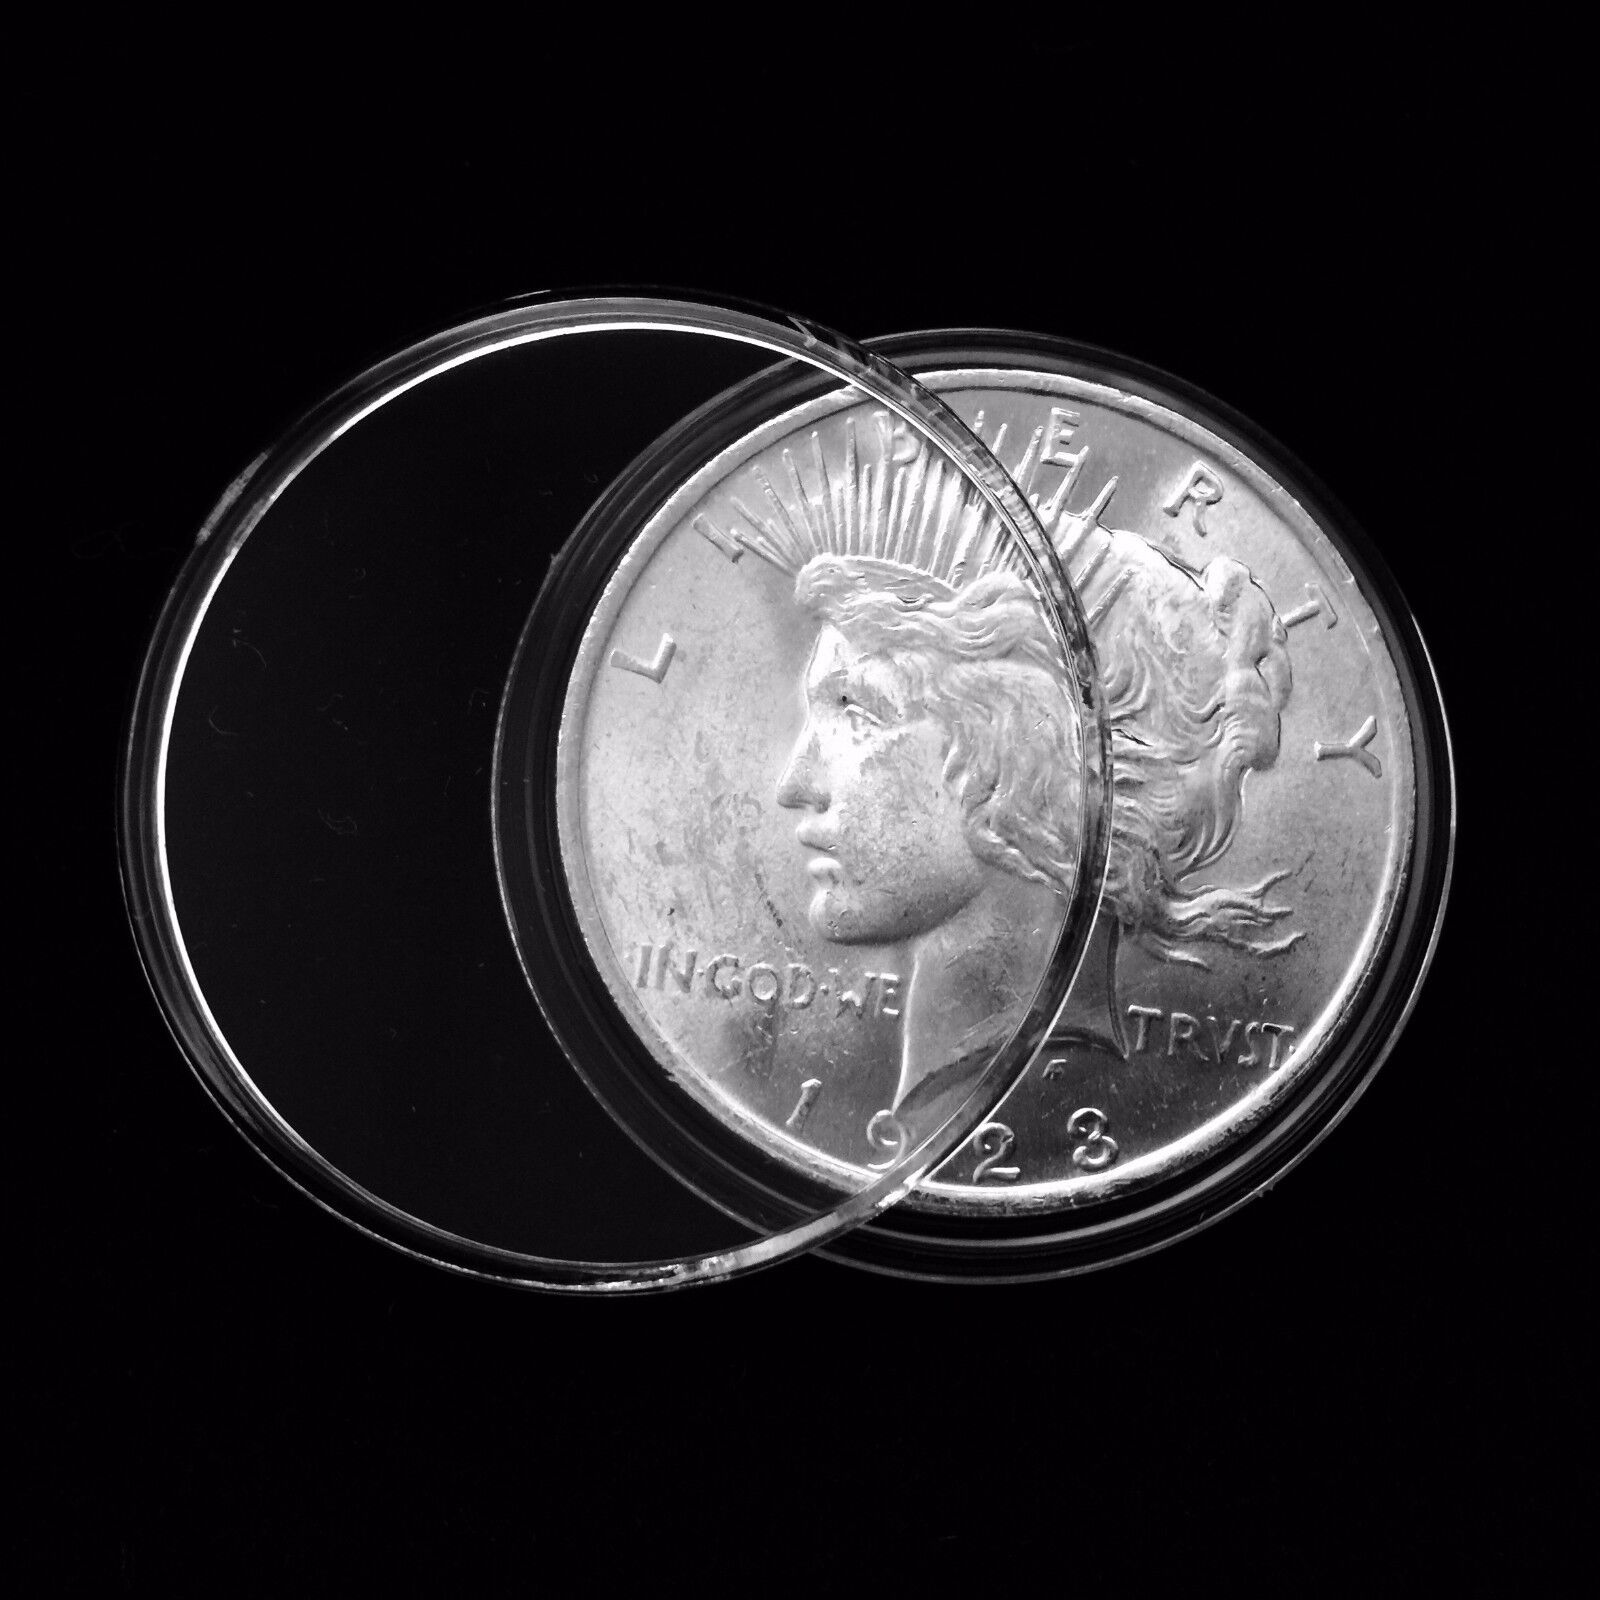 250 Guardhouse 38mm Airtight Coin Capsules for 1 oz Canadian Silver Maple Leaf